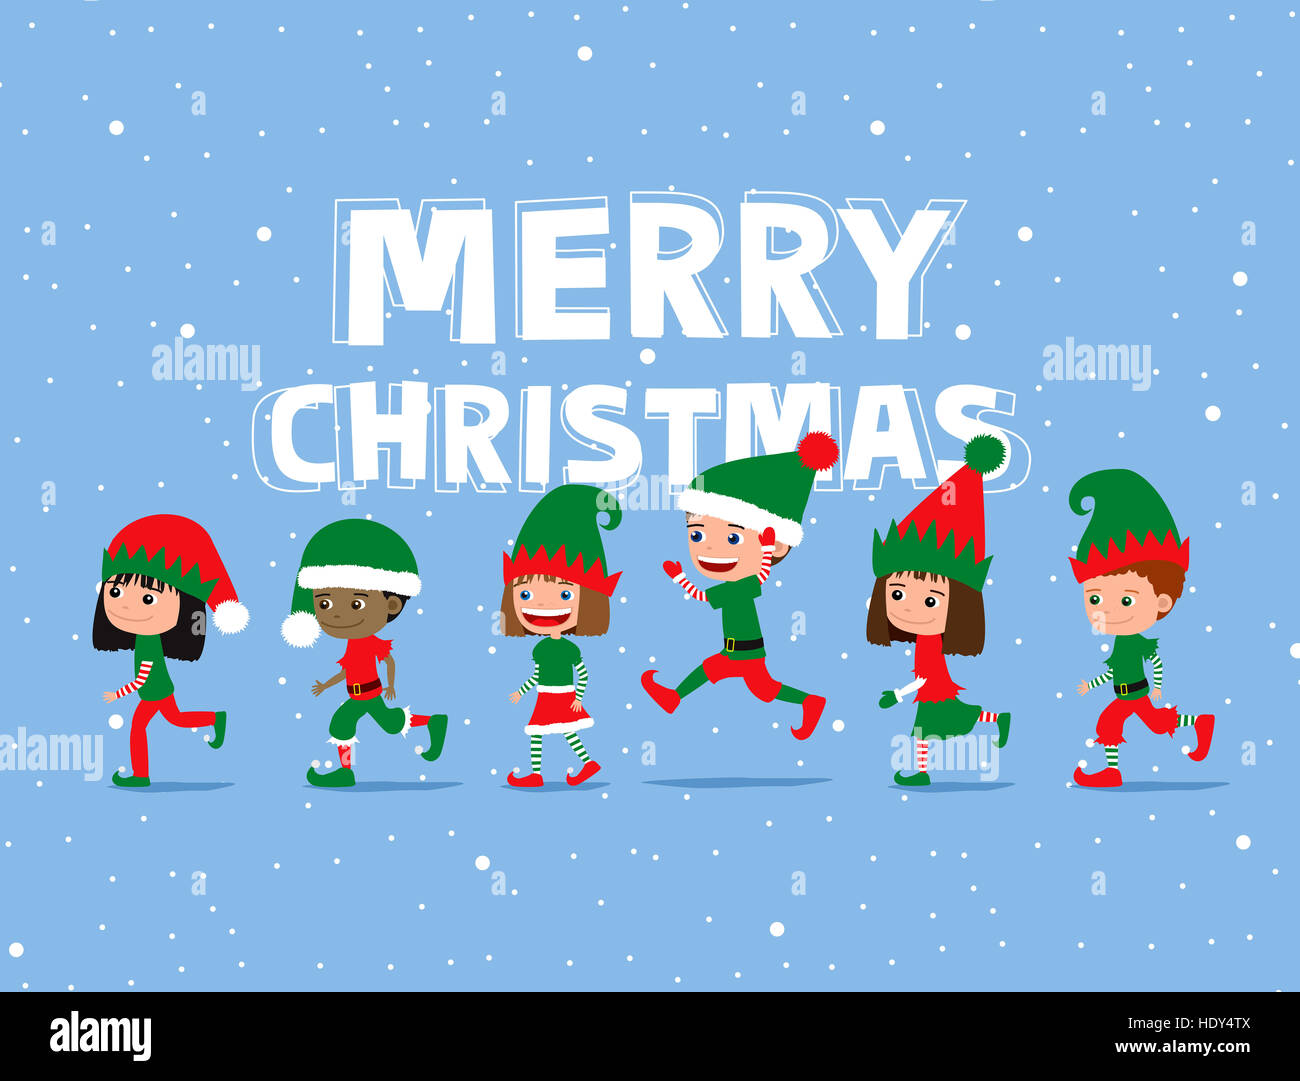 Cute Cartoon Kids Wearing Elf Costumes. Greeting Card.